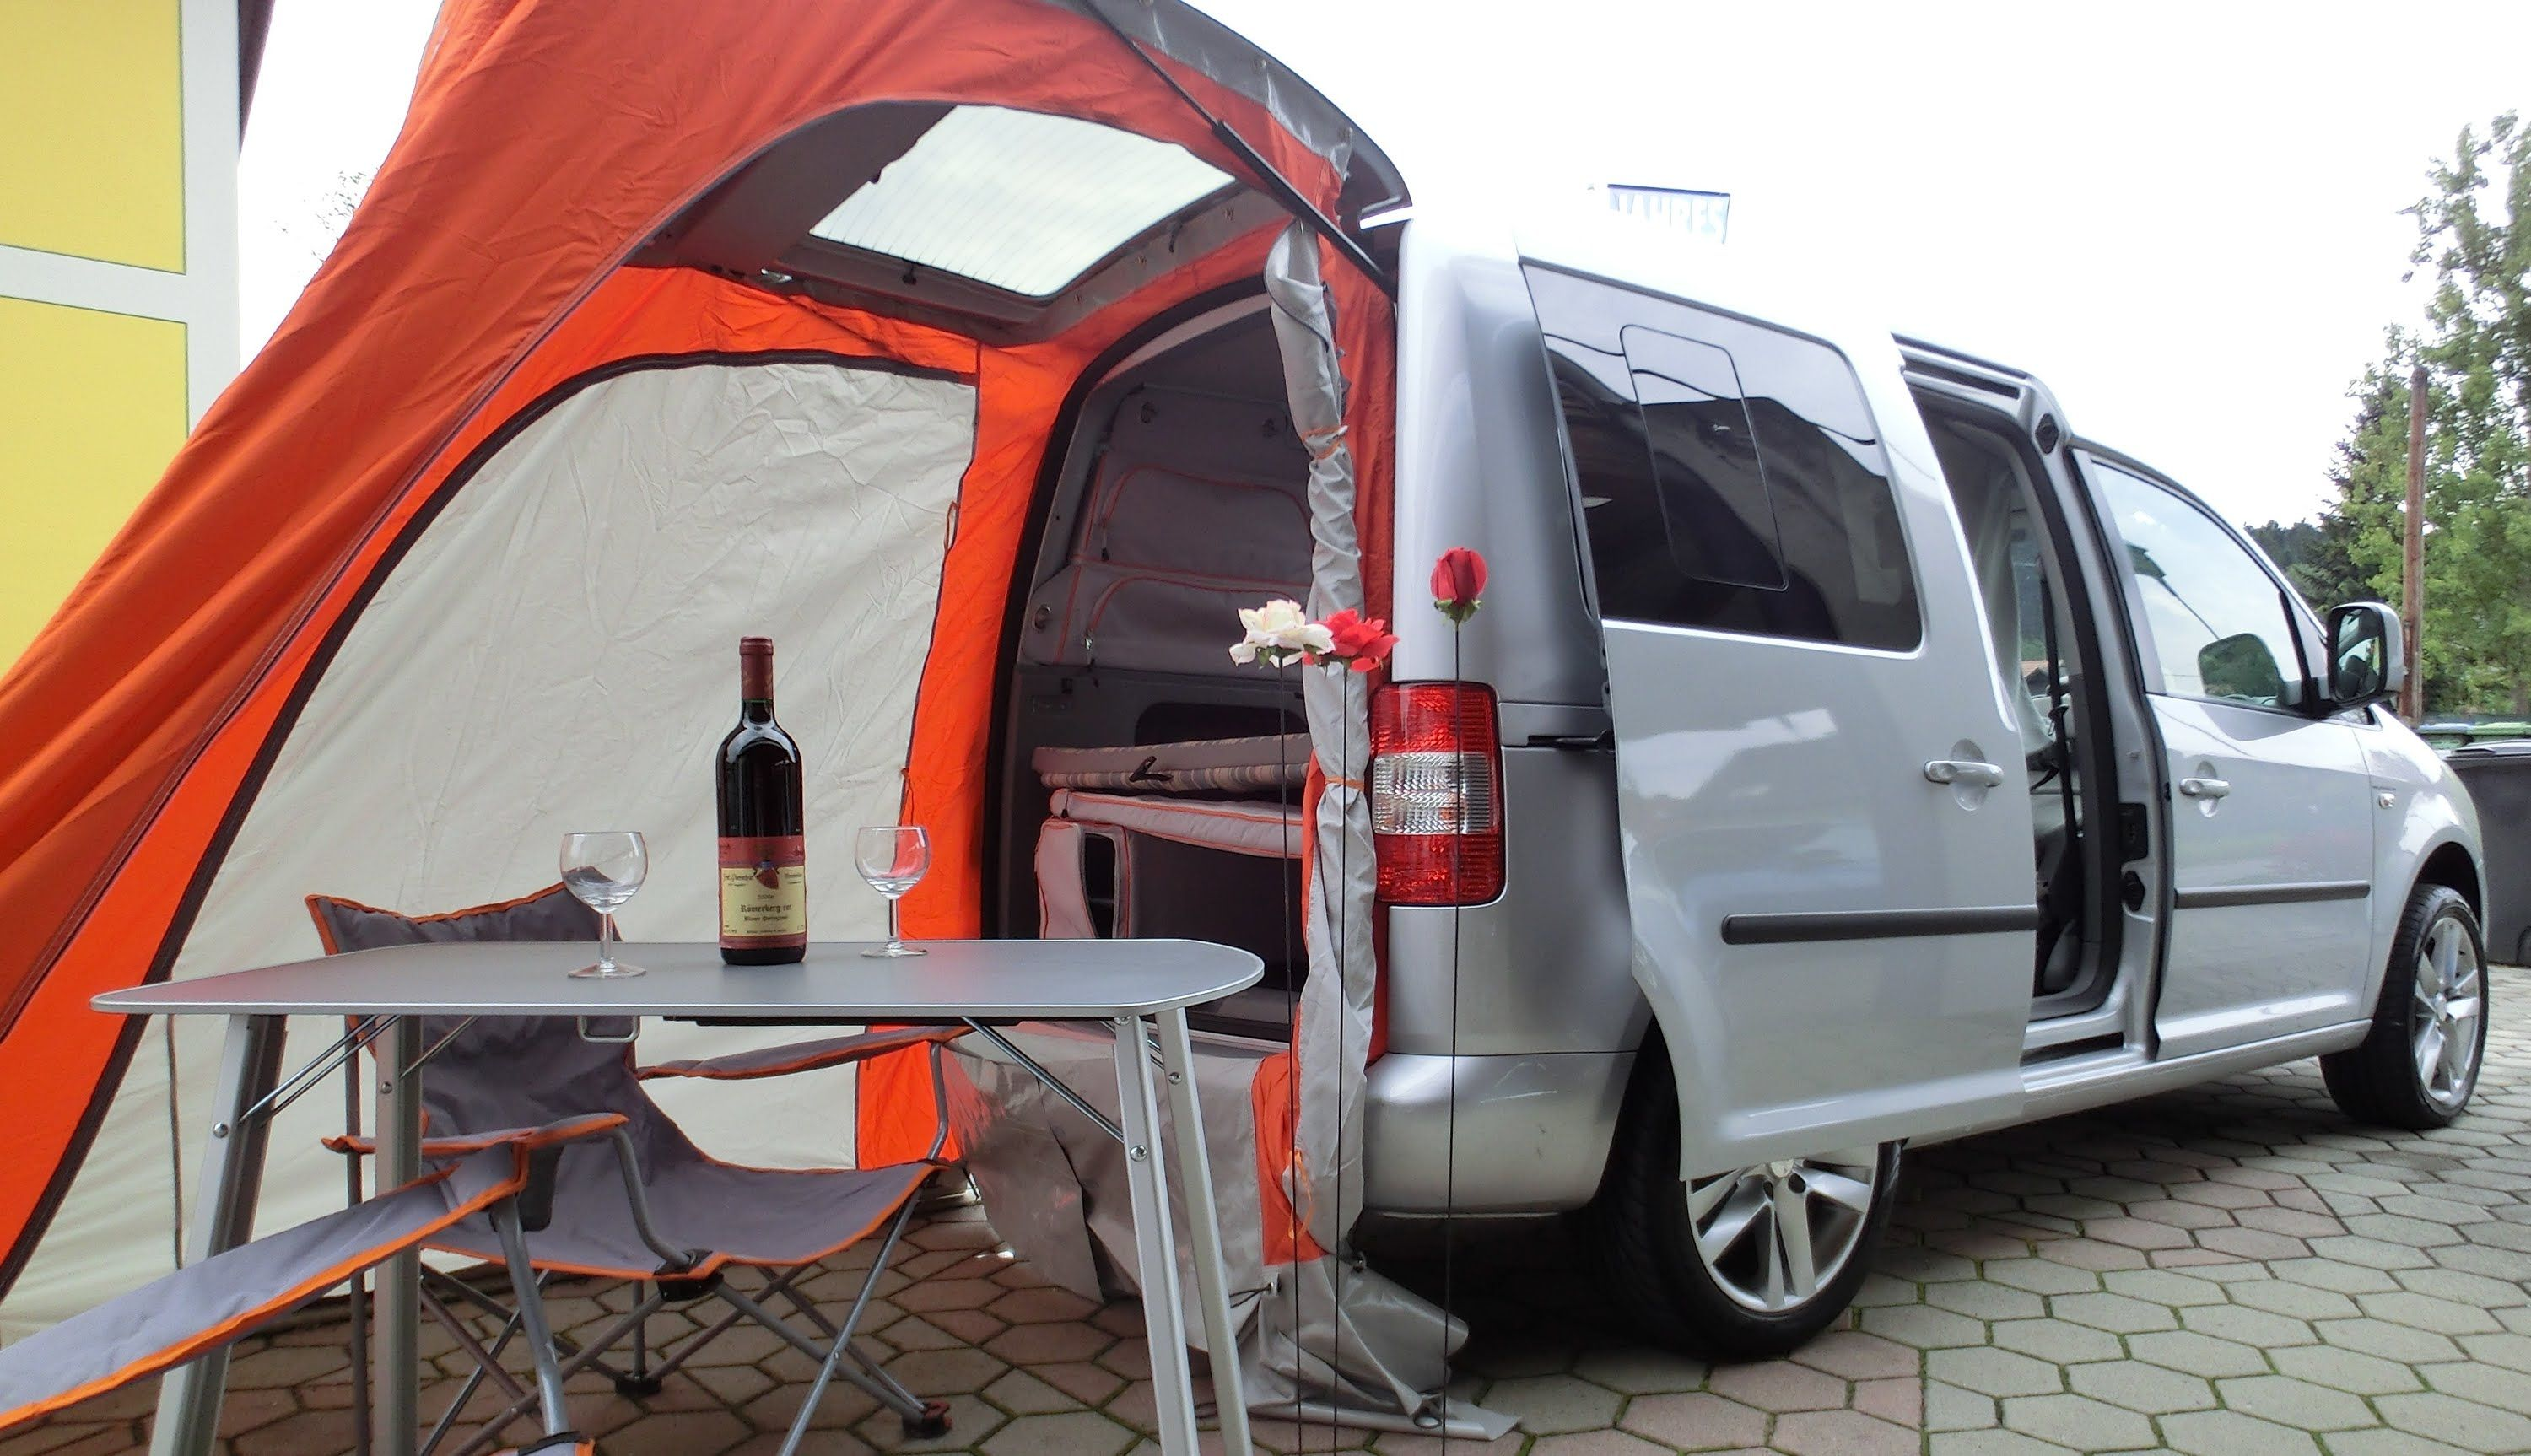 vw caddy life tramper ecofuel vw camping pinterest vw caddy tramper. Black Bedroom Furniture Sets. Home Design Ideas